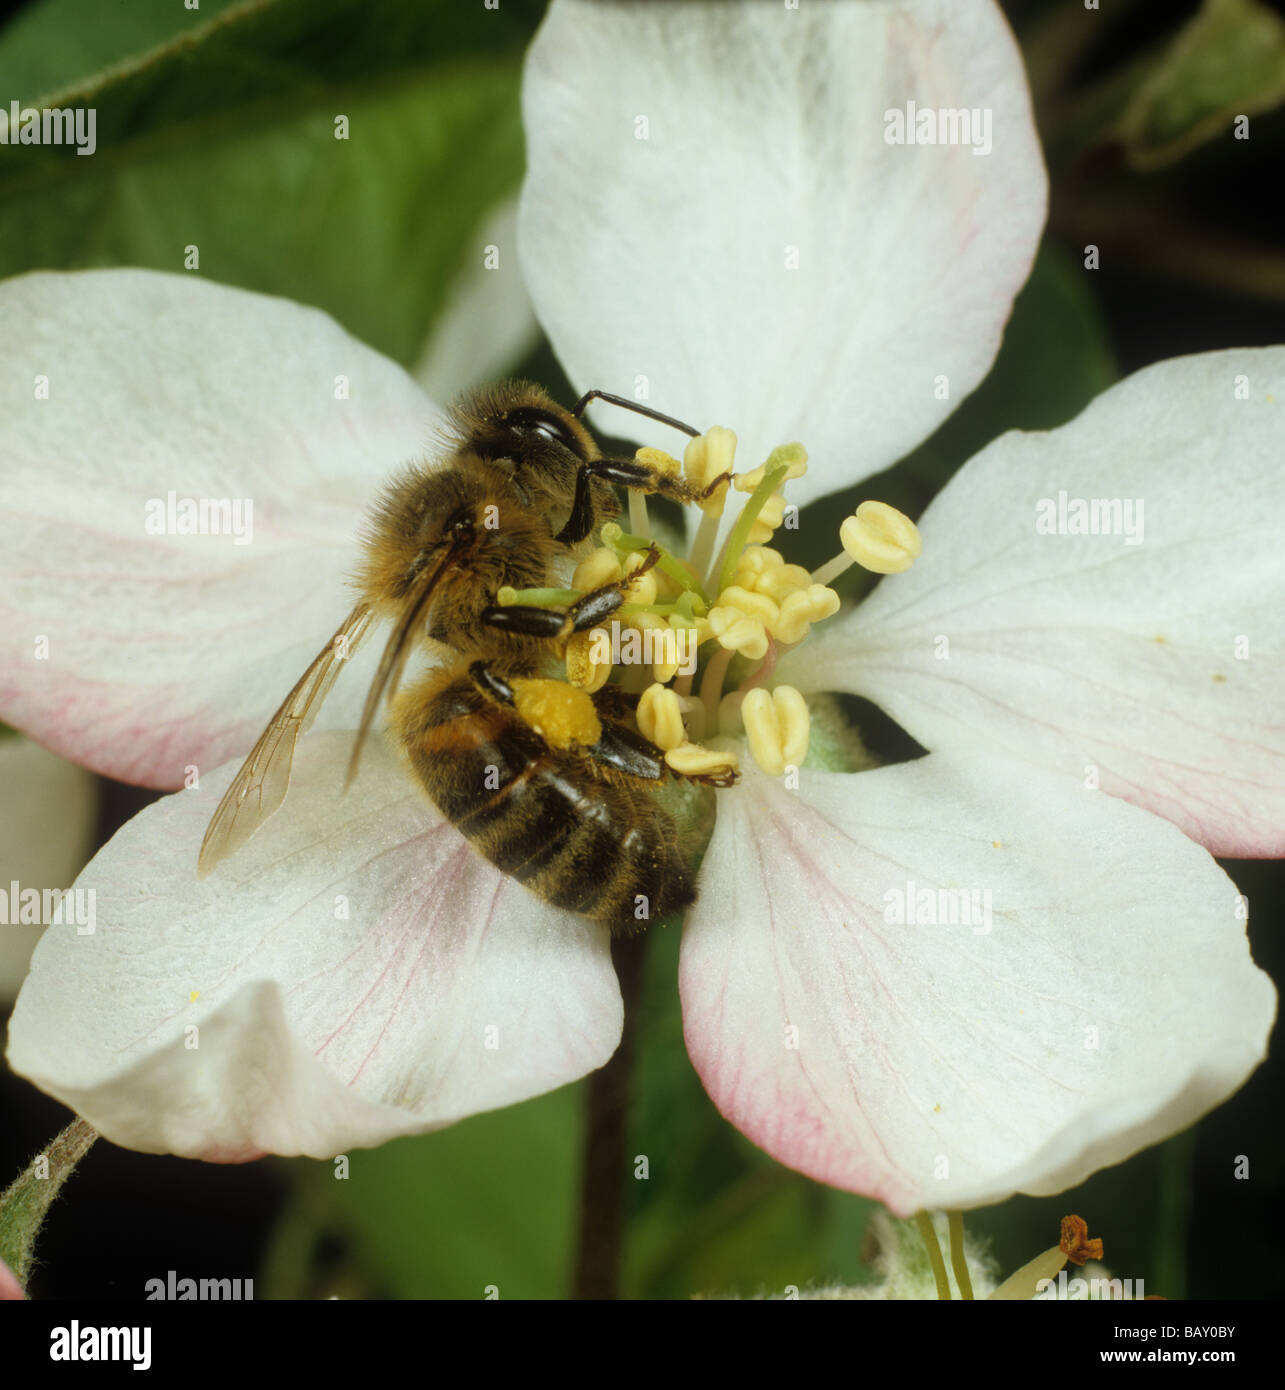 Worker honey bee Apis mellifera on an apple tree flower in spring - Stock Image